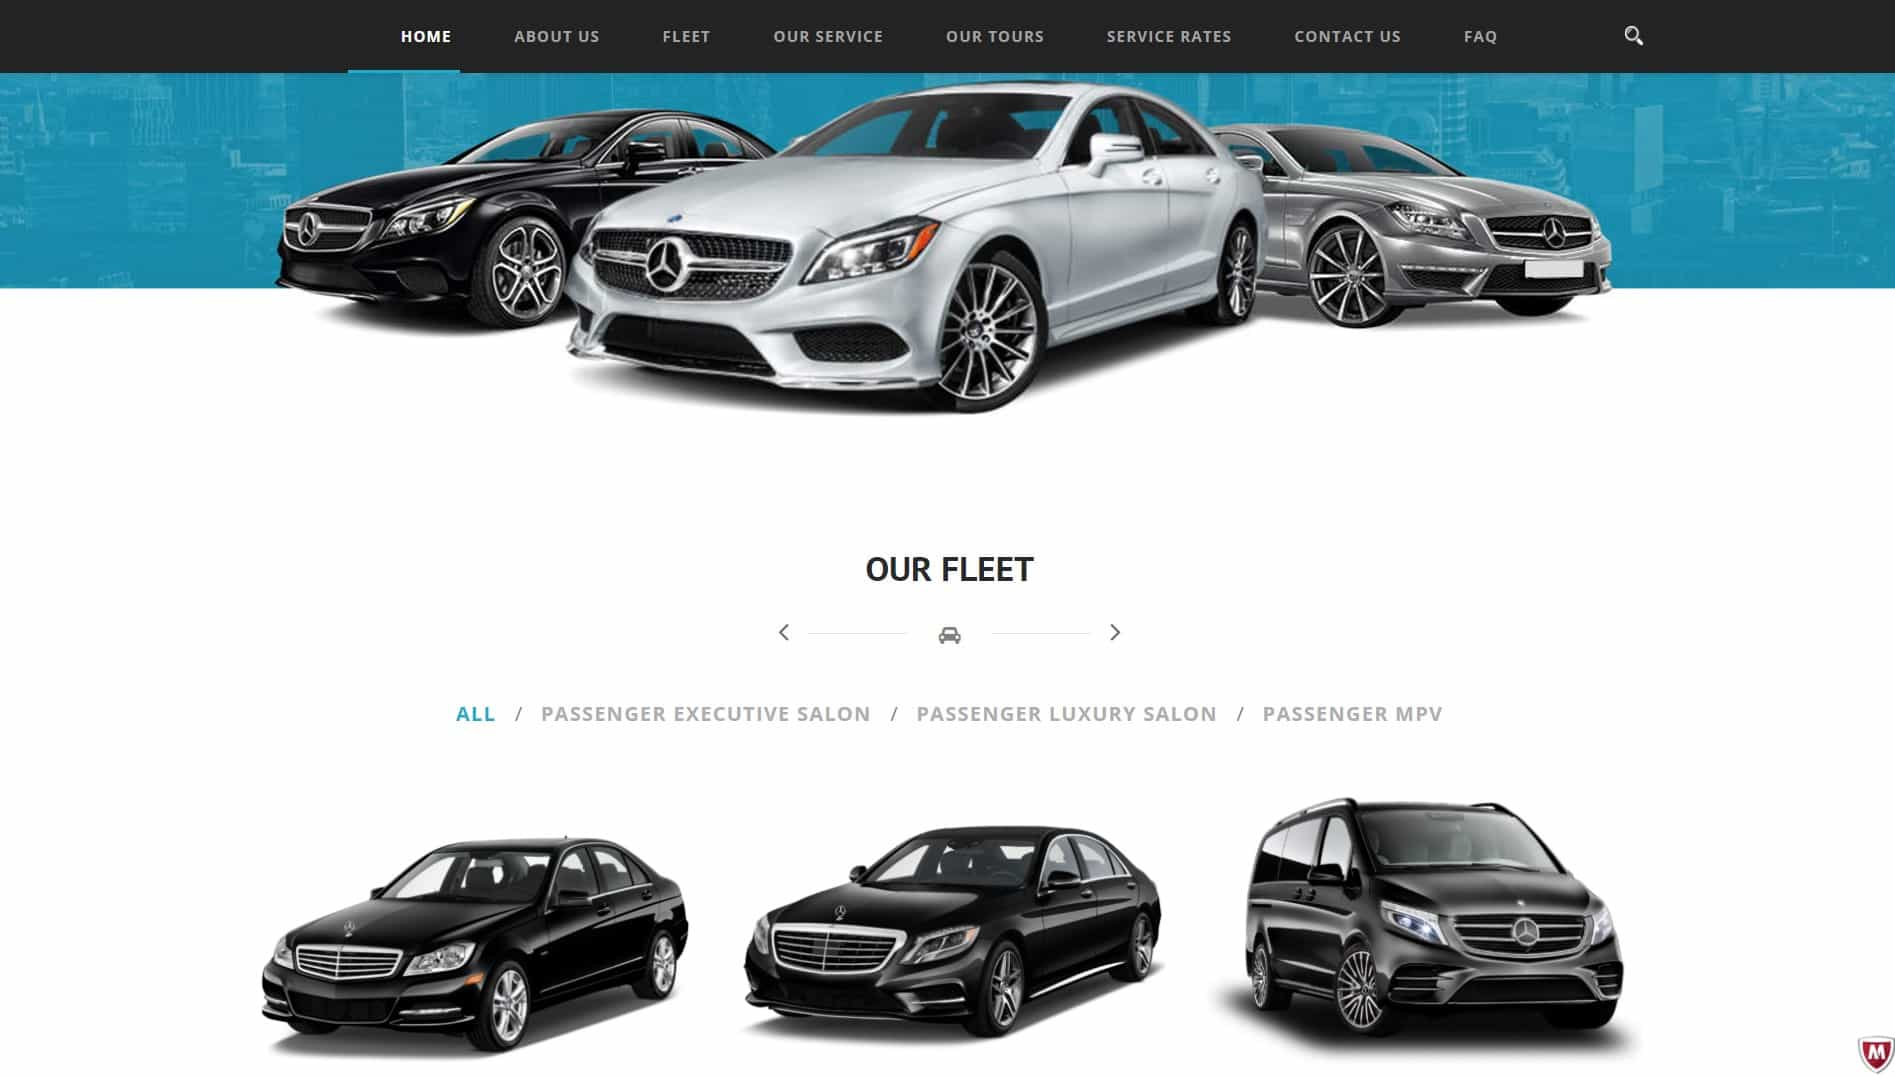 Our portfolio - My-Chauffeurs | Web Design & Development Studio London